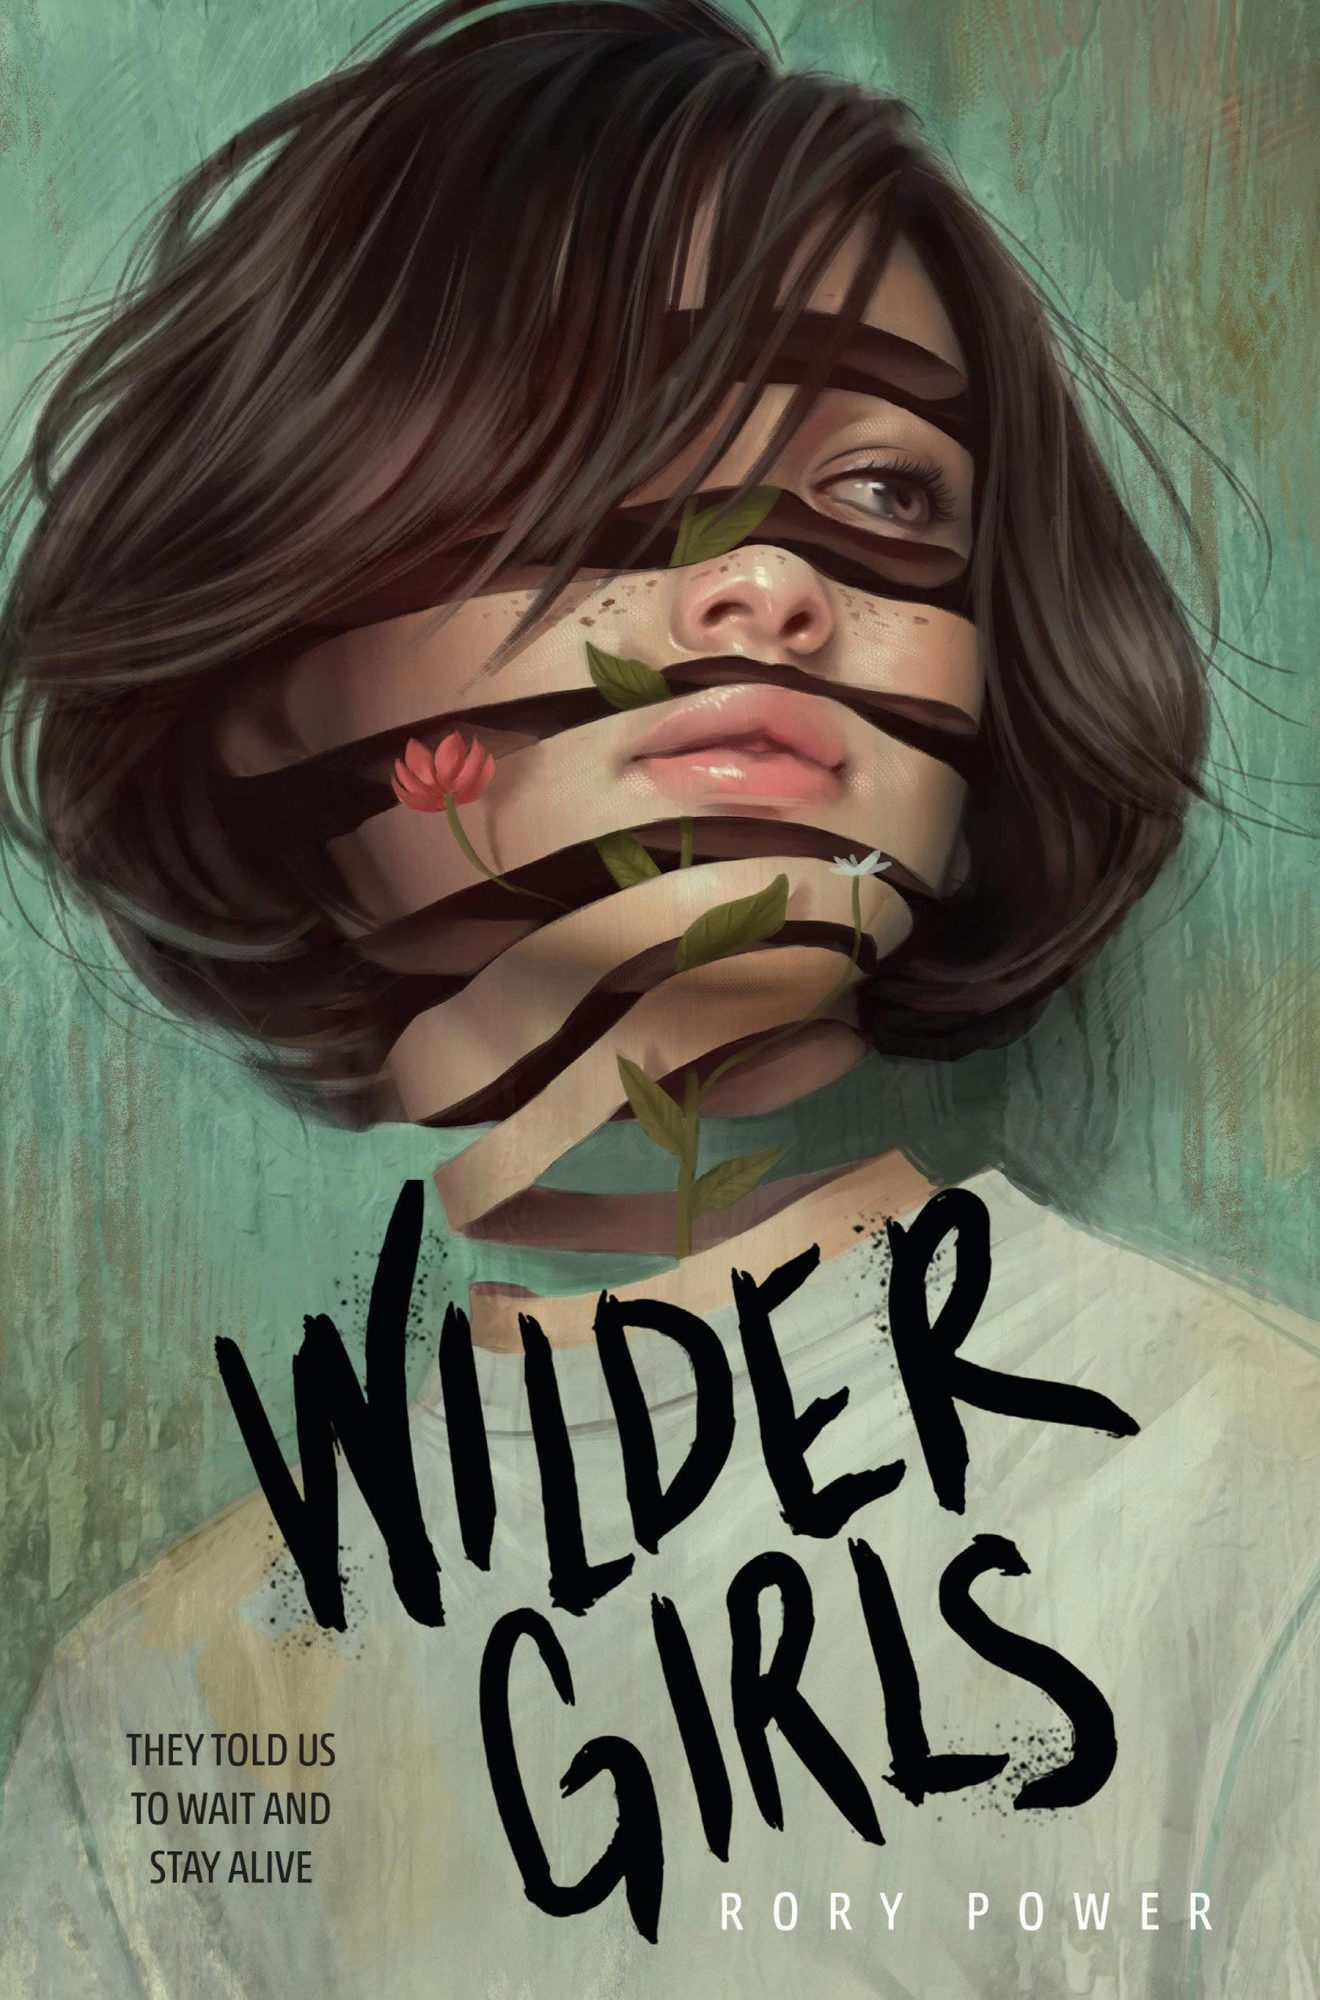 Wilder Girls, by Rory Power